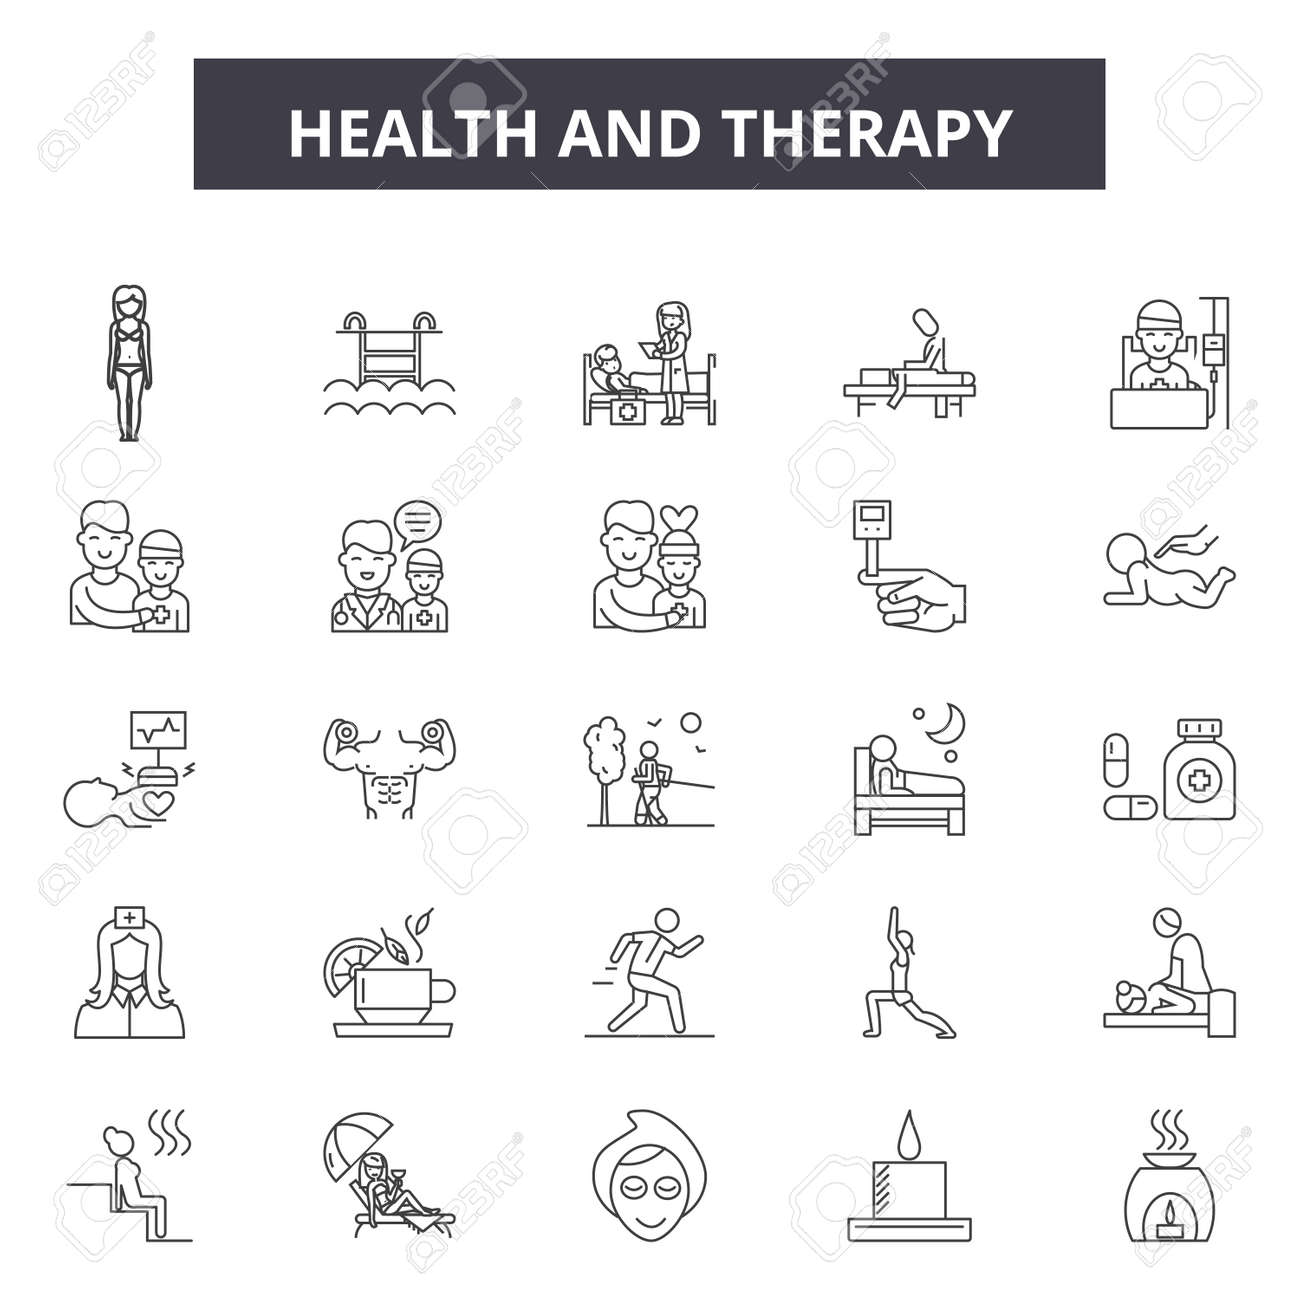 Health and therapy line icons, signs set, vector. Health and therapy outline concept illustration: health,therapy,medical,medicine,man,care,symbol - 120896541